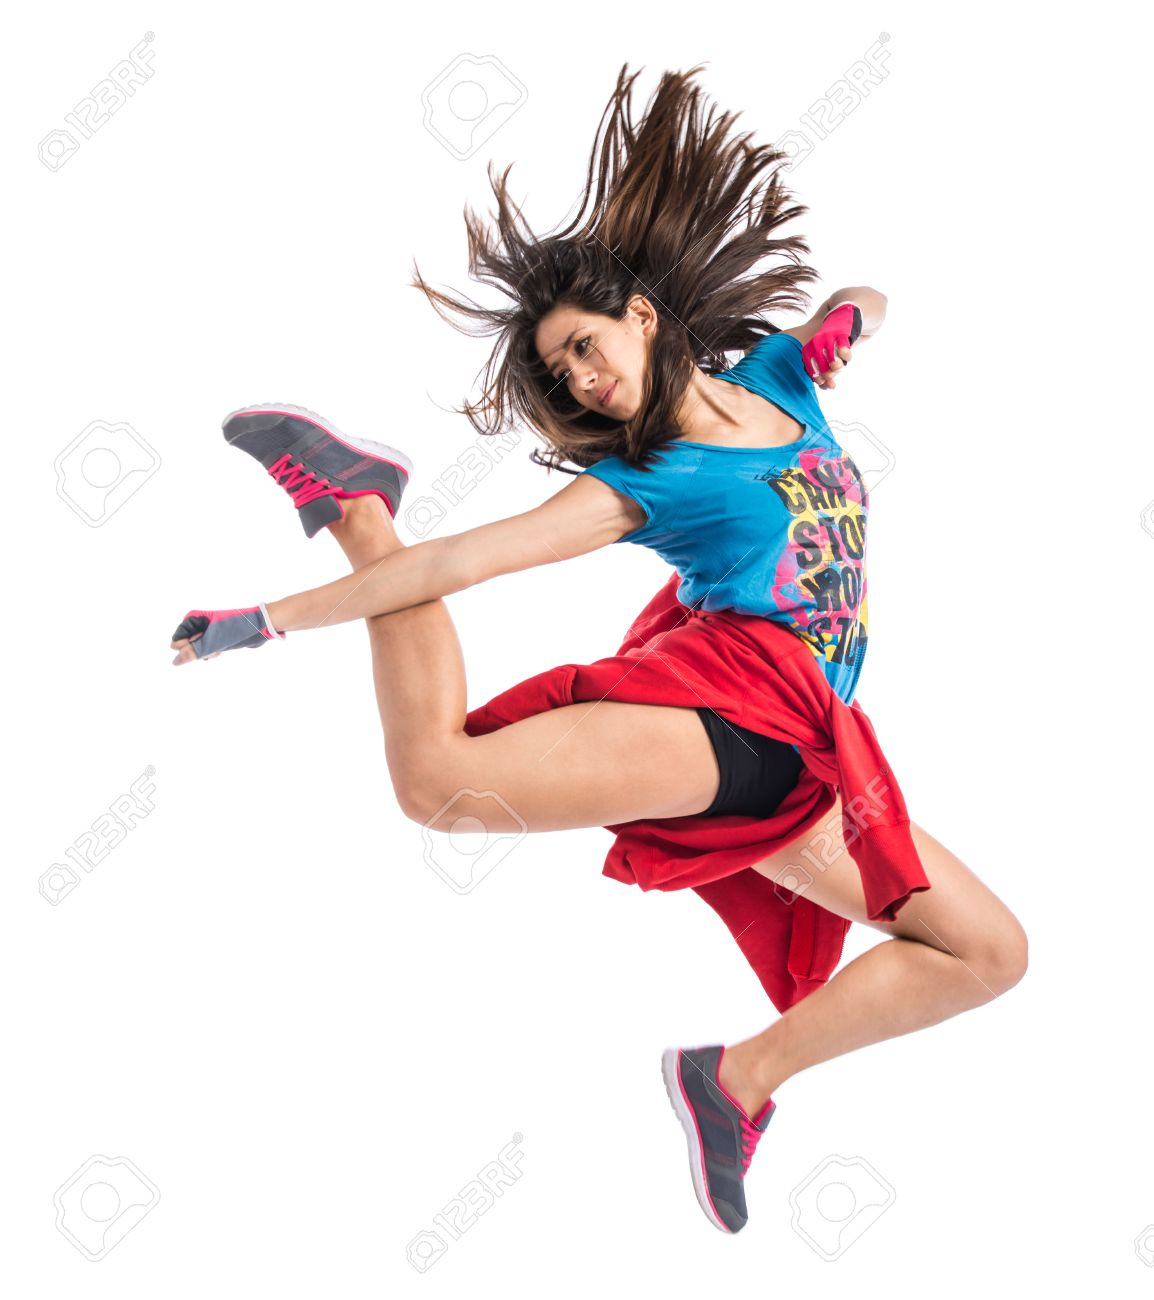 Teenager girl jumping in street dance style Stock Photo - 41206358